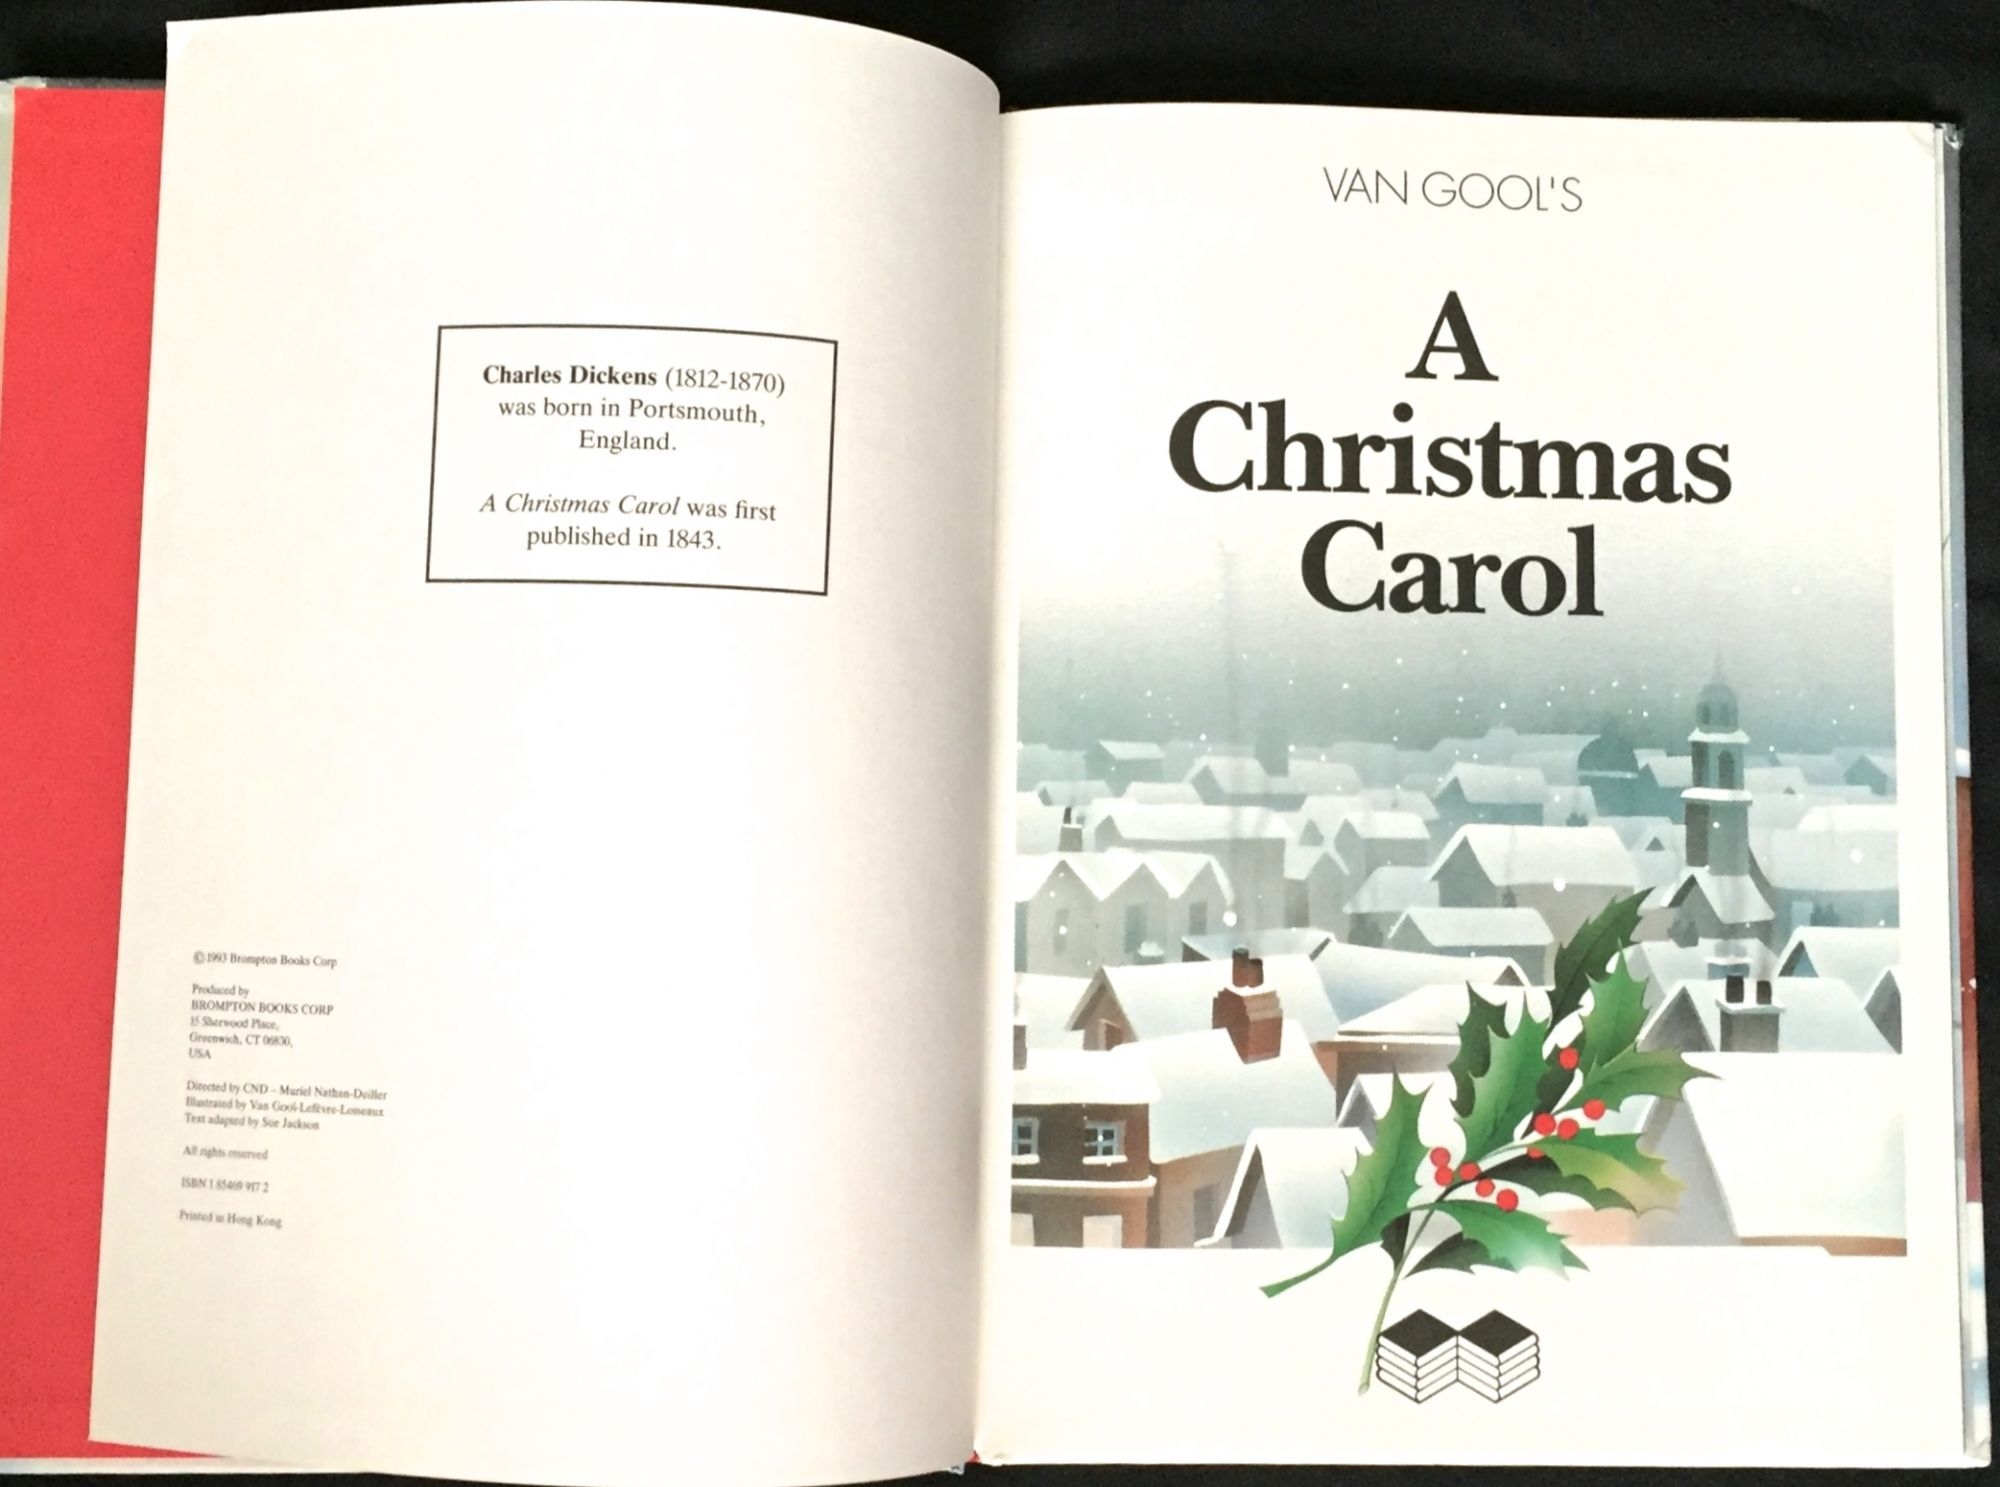 van gools a christmas carol - When Was A Christmas Carol Published